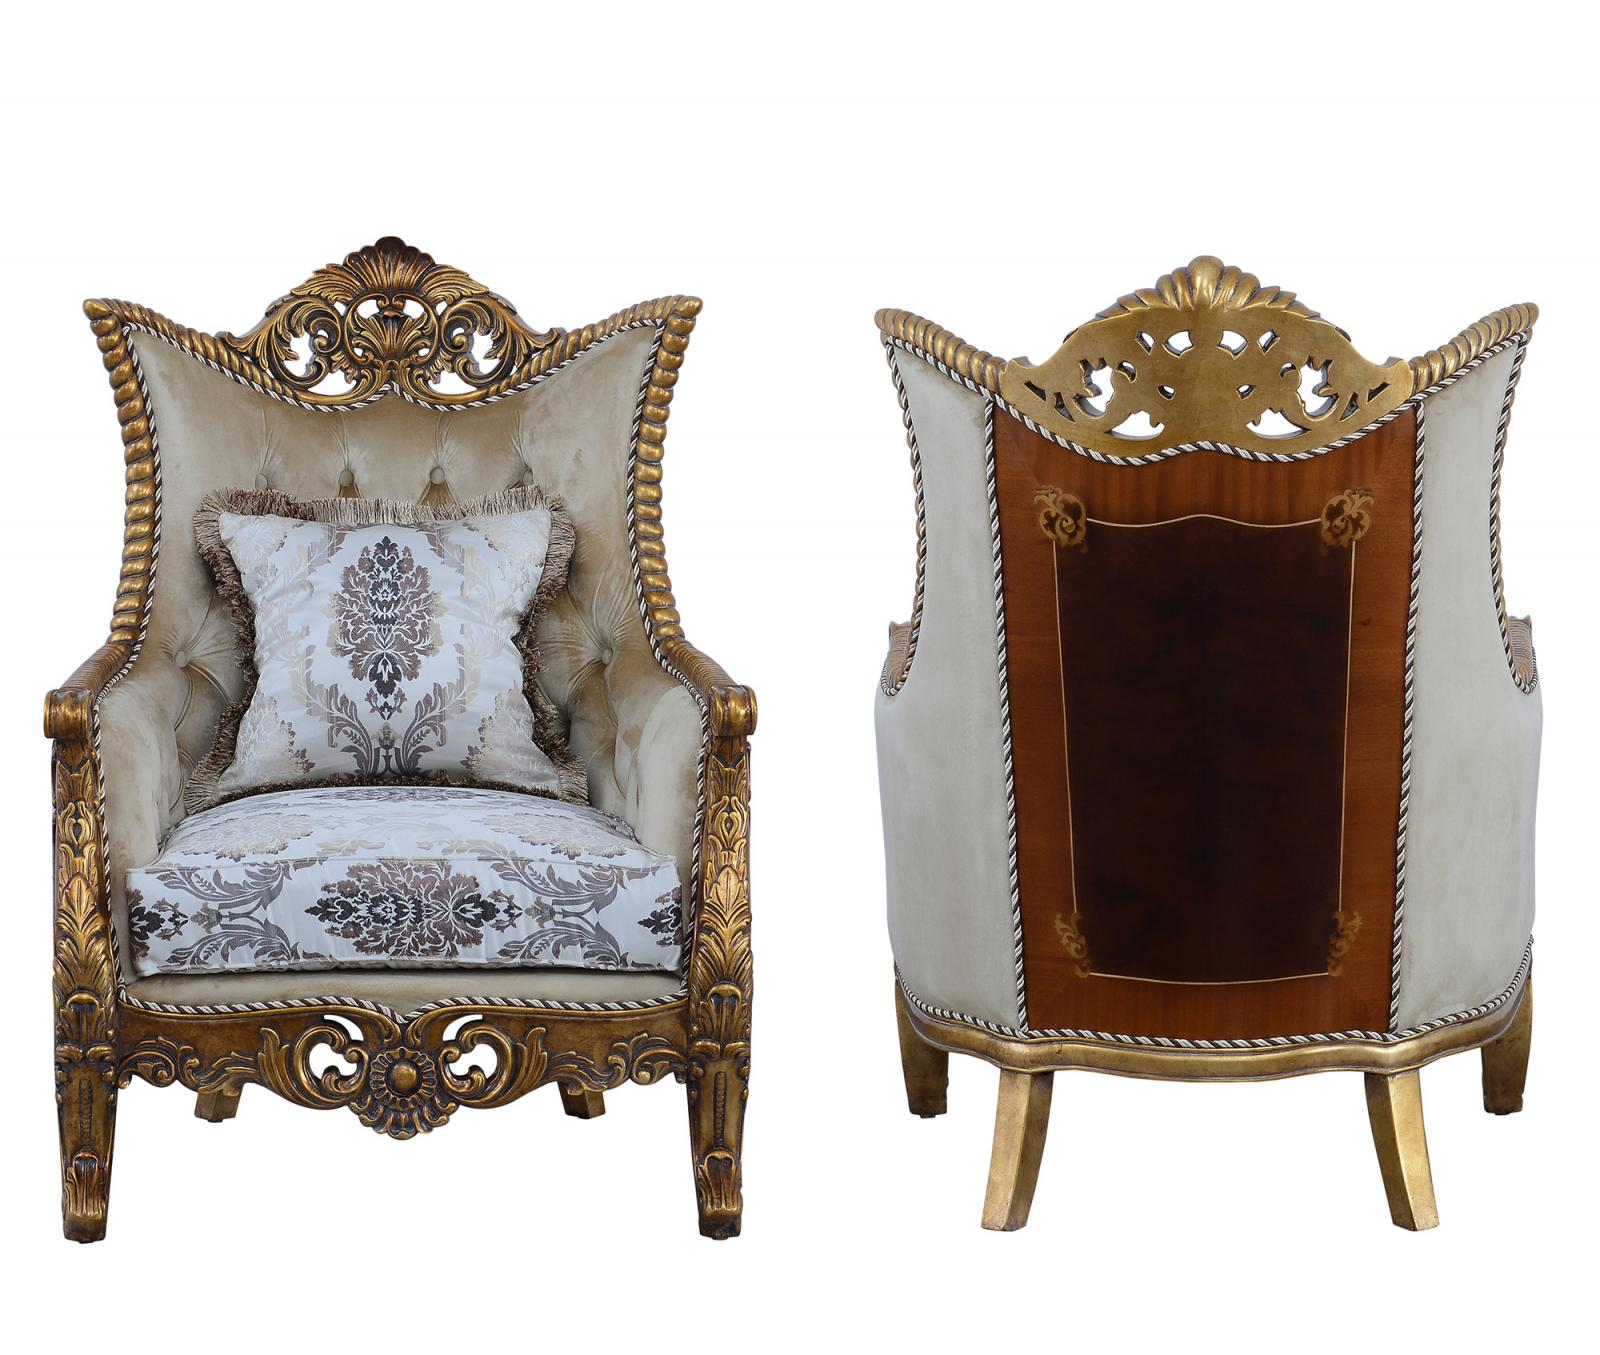 Classic  Traditional Beige  Bronze  Antique Wood  Solid Hardwood and Fabric Arm Chair Set EUROPEAN FURNITURE 31054-C-Set-2